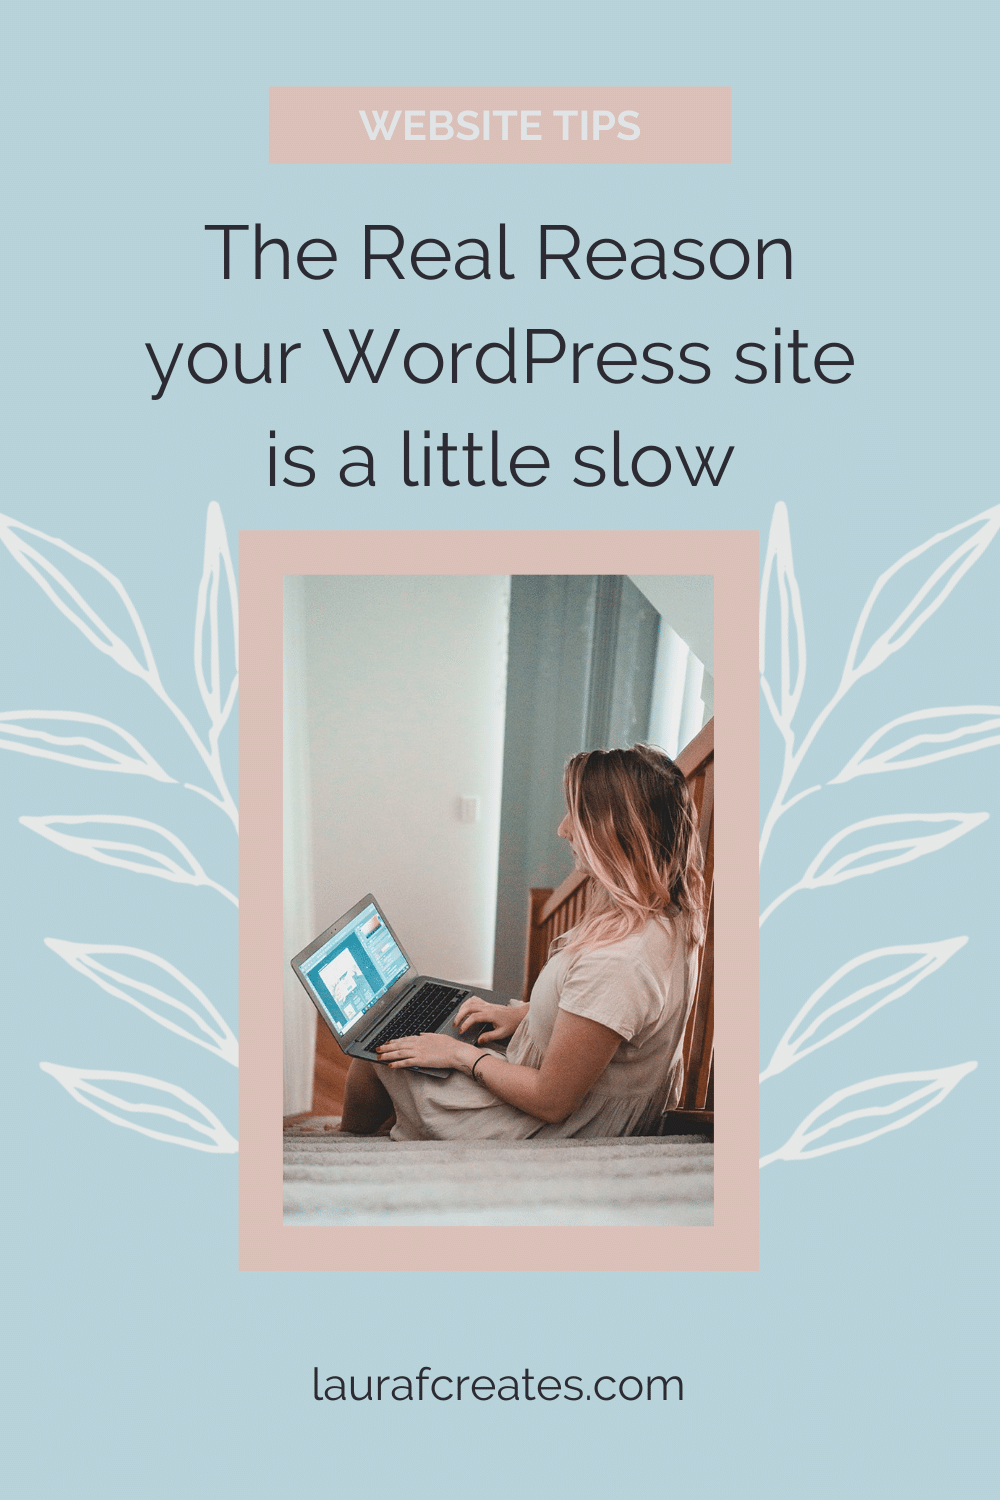 The Real Reason your WordPress site is a little slow. This blog post includes tips for building your website, websites for business.